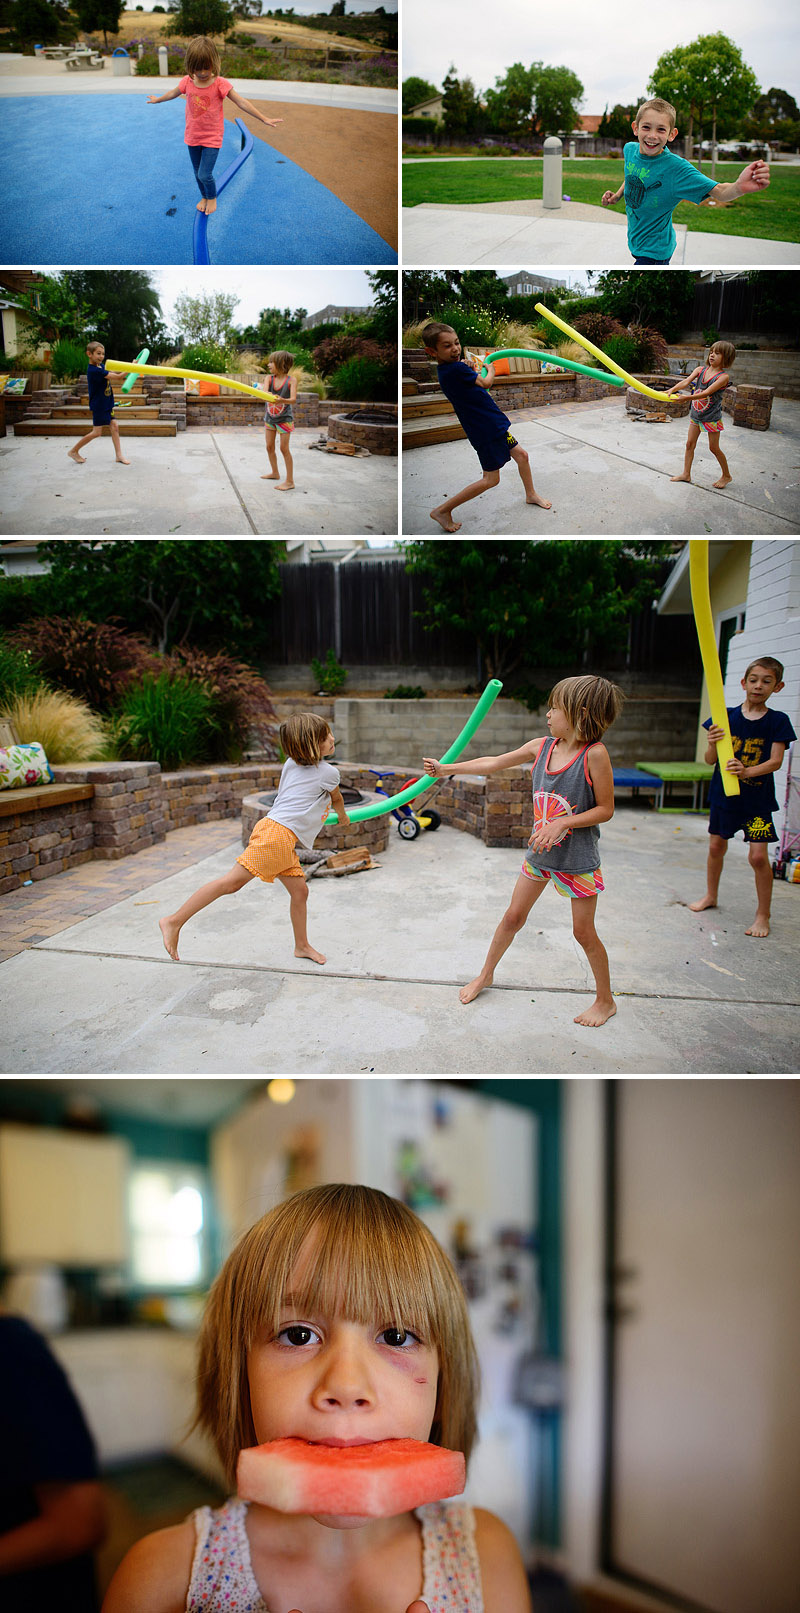 kids fighting with fun noodles